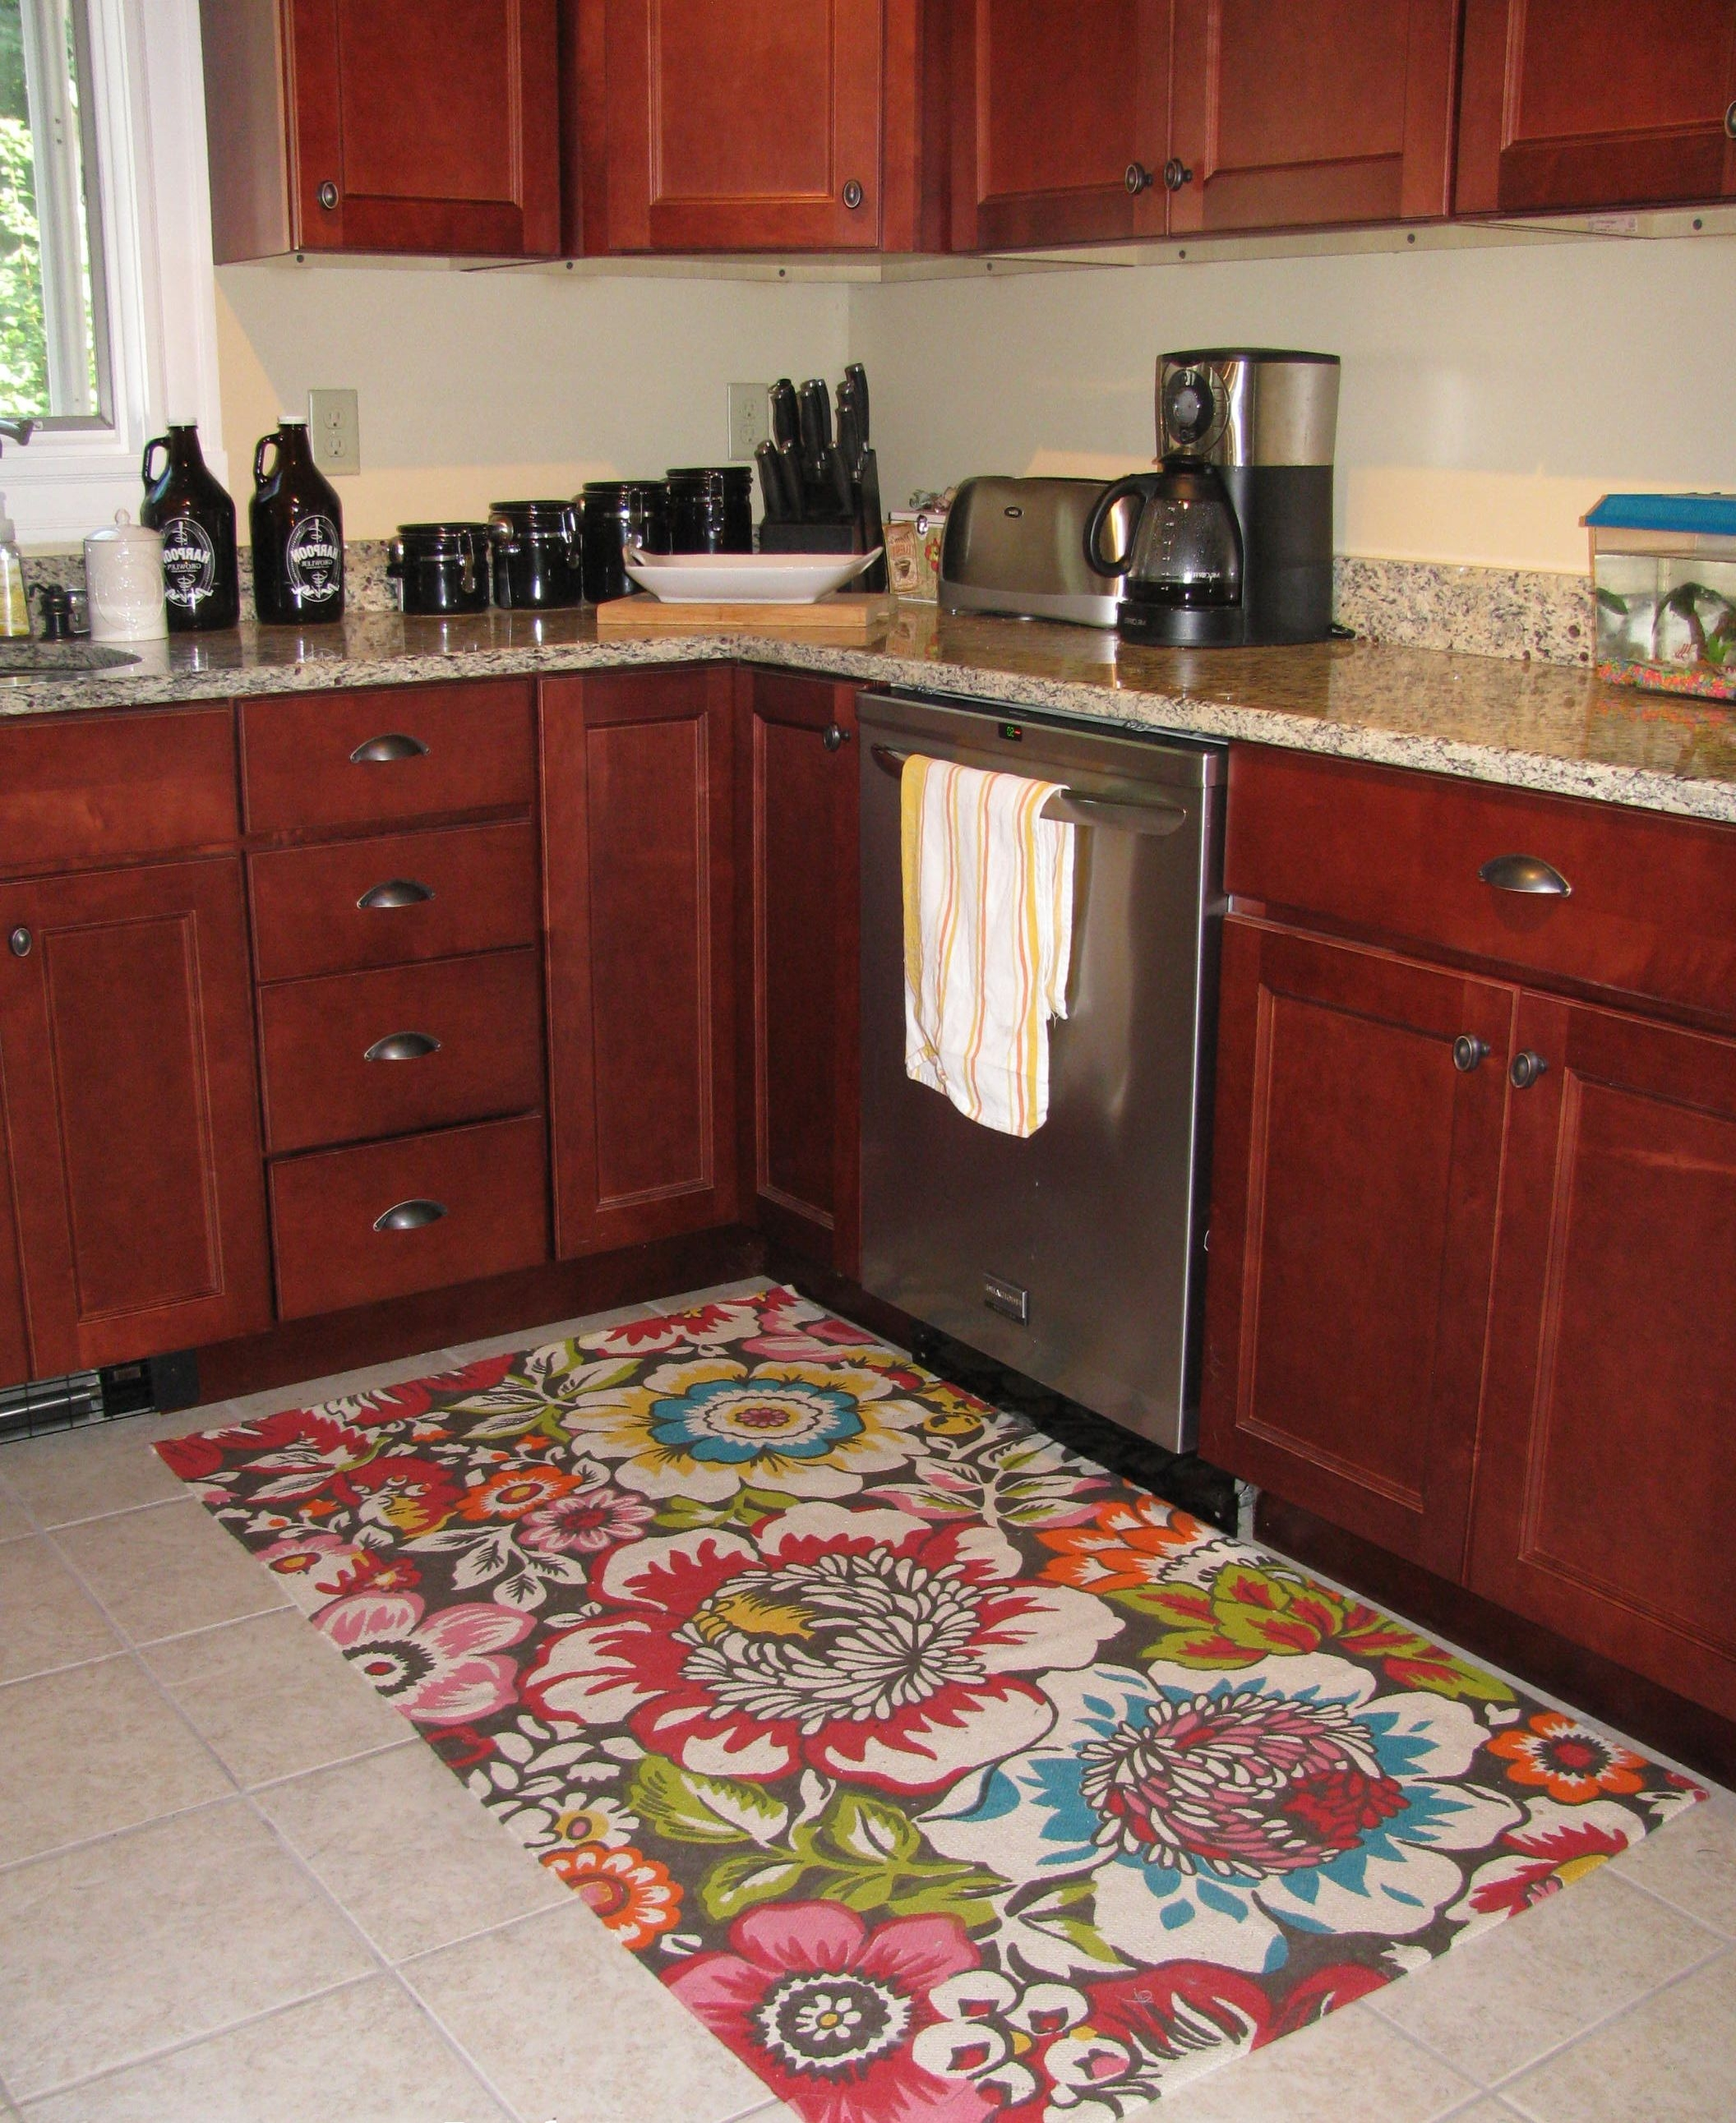 Red Kitchen Rugs Regarding Small Red Rugs (Image 4 of 15)